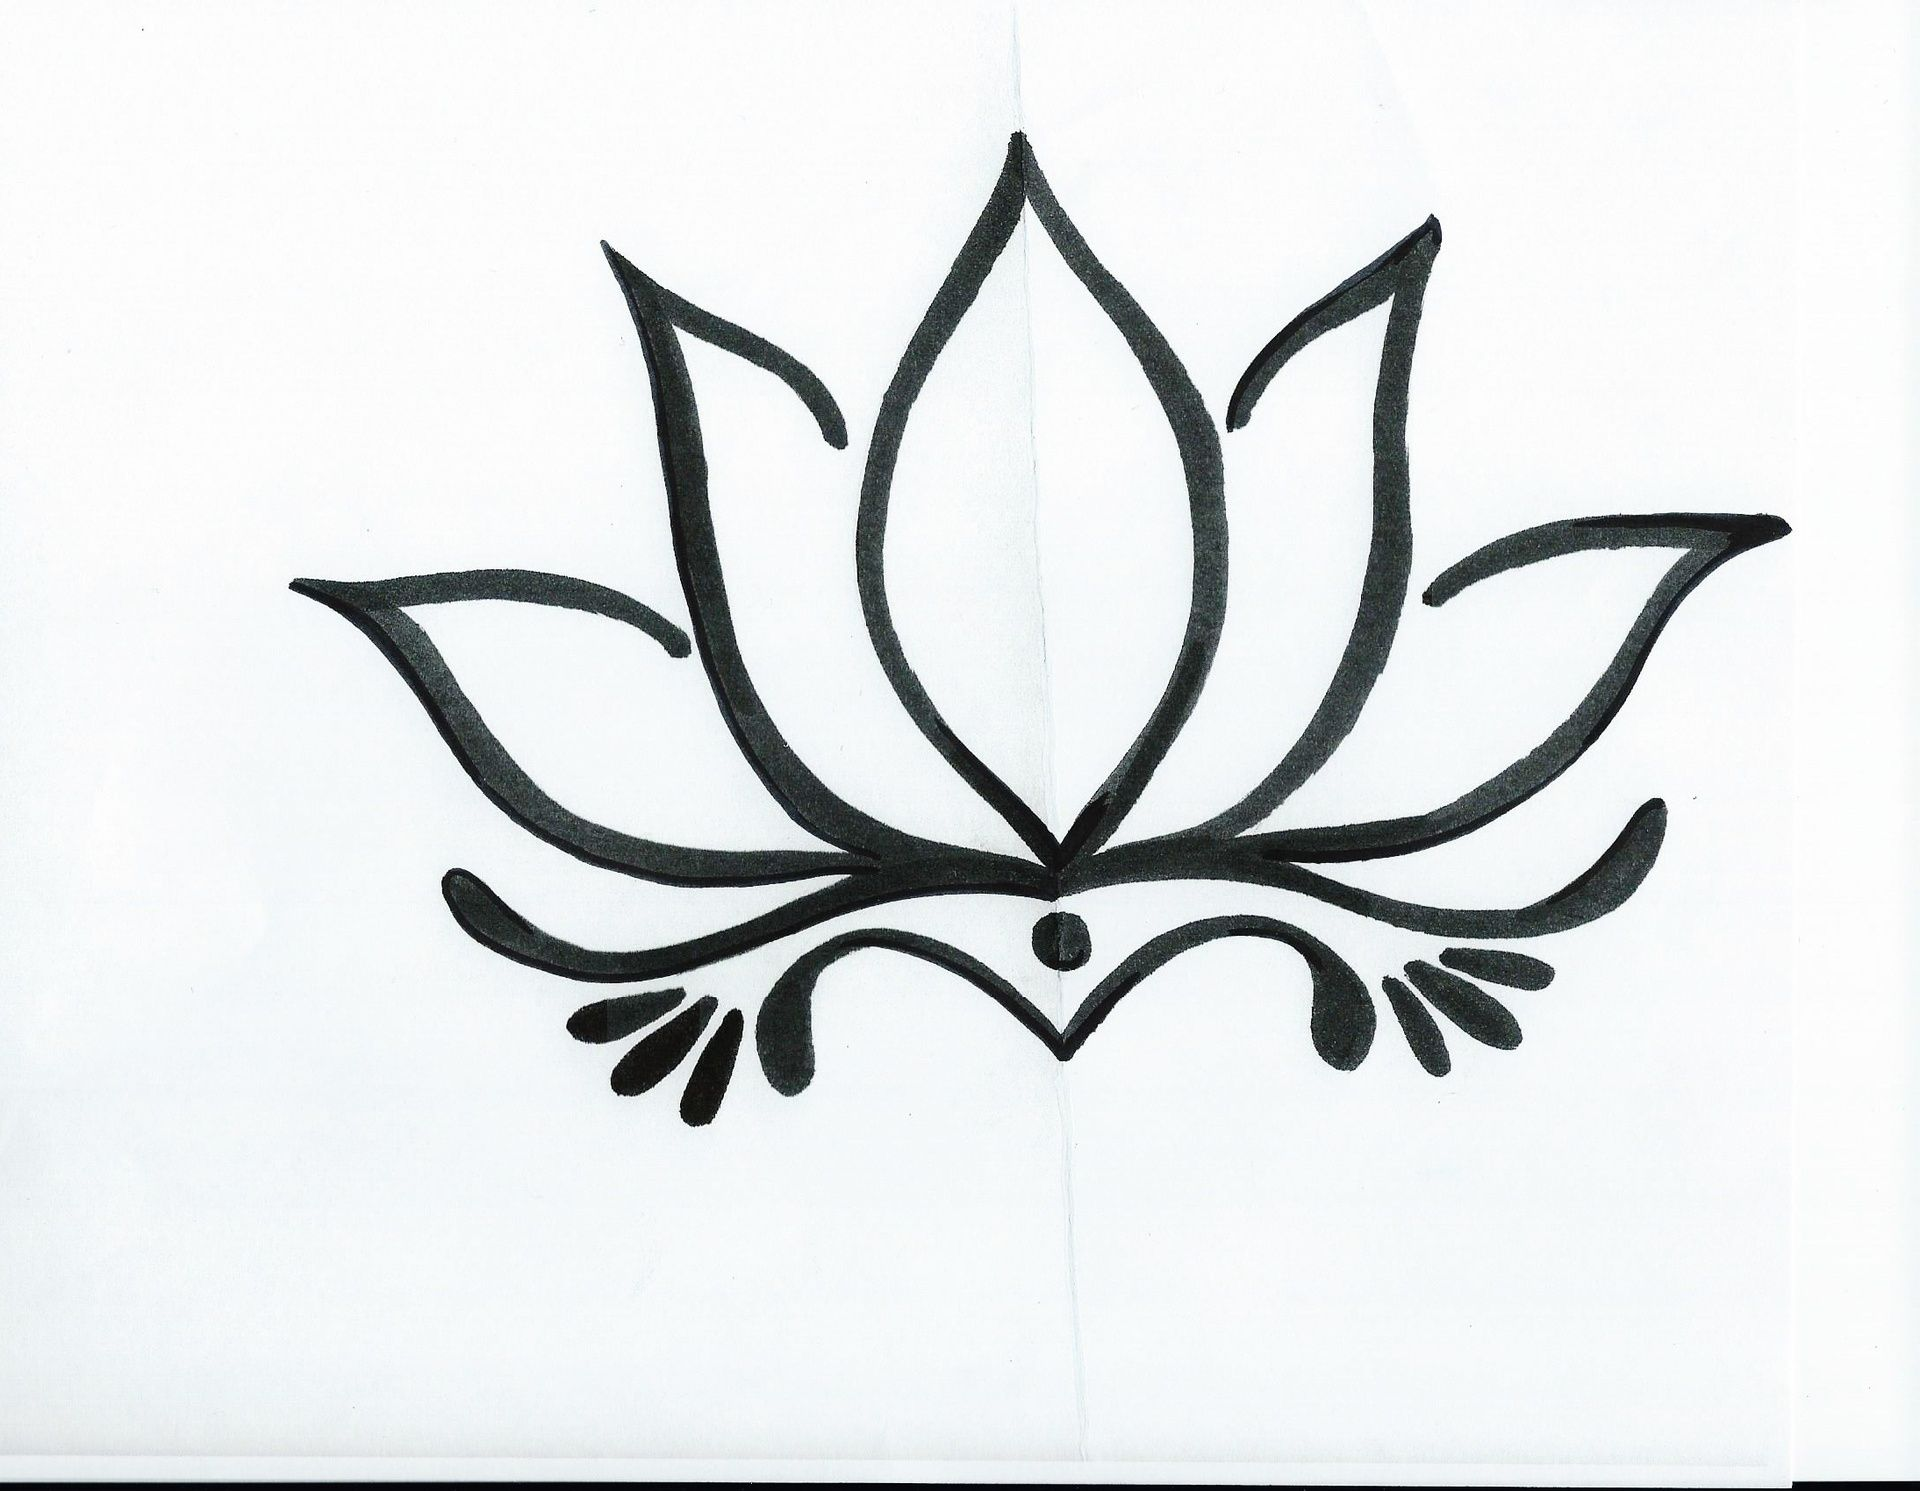 Ascending lotus tattoo tattoos ideasinspirations pinterest ascending lotus tattoo mightylinksfo